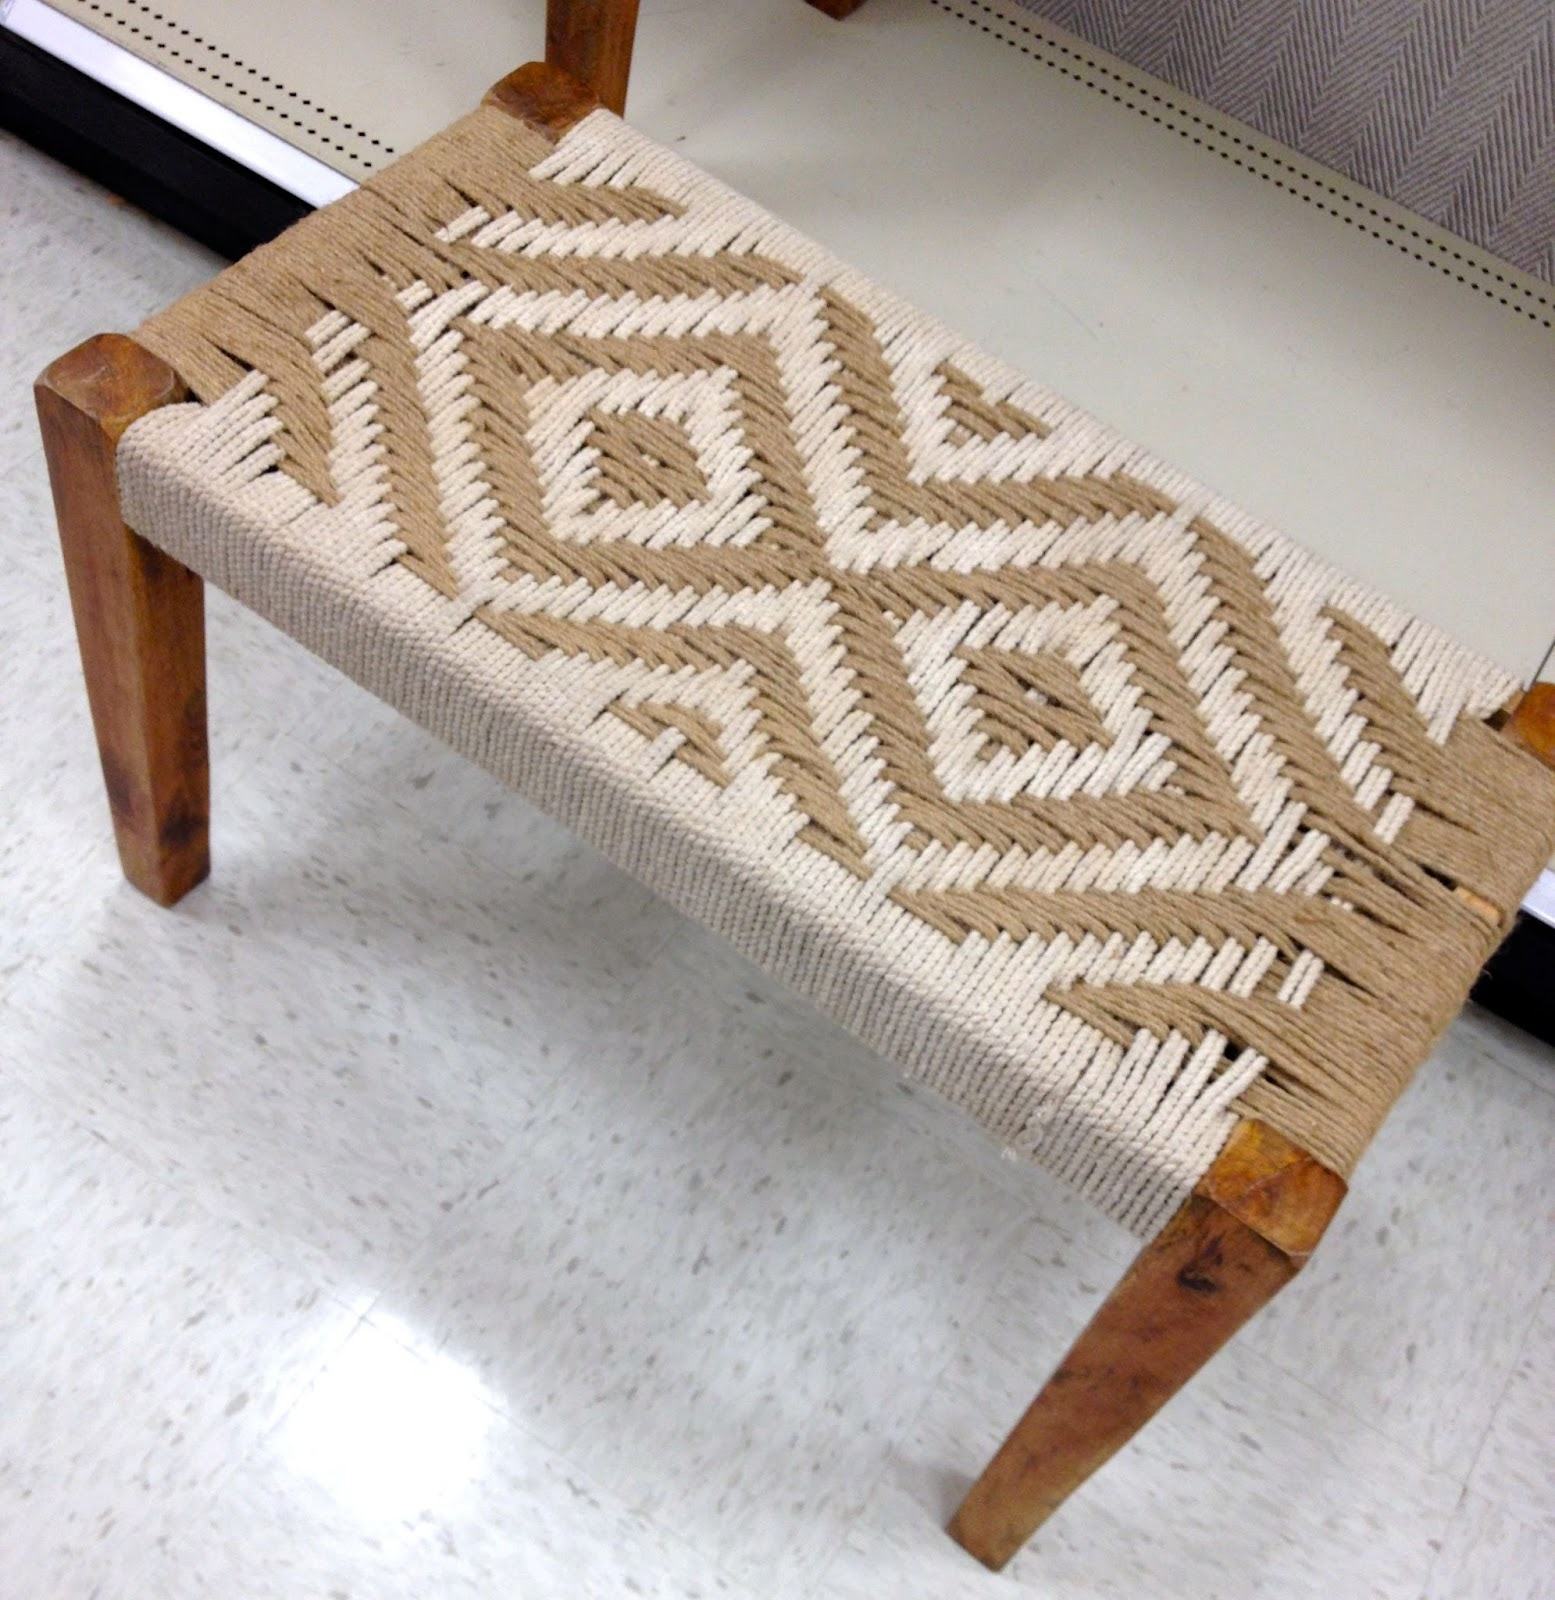 New Nate Berkus and Threshold Collections at Target ...